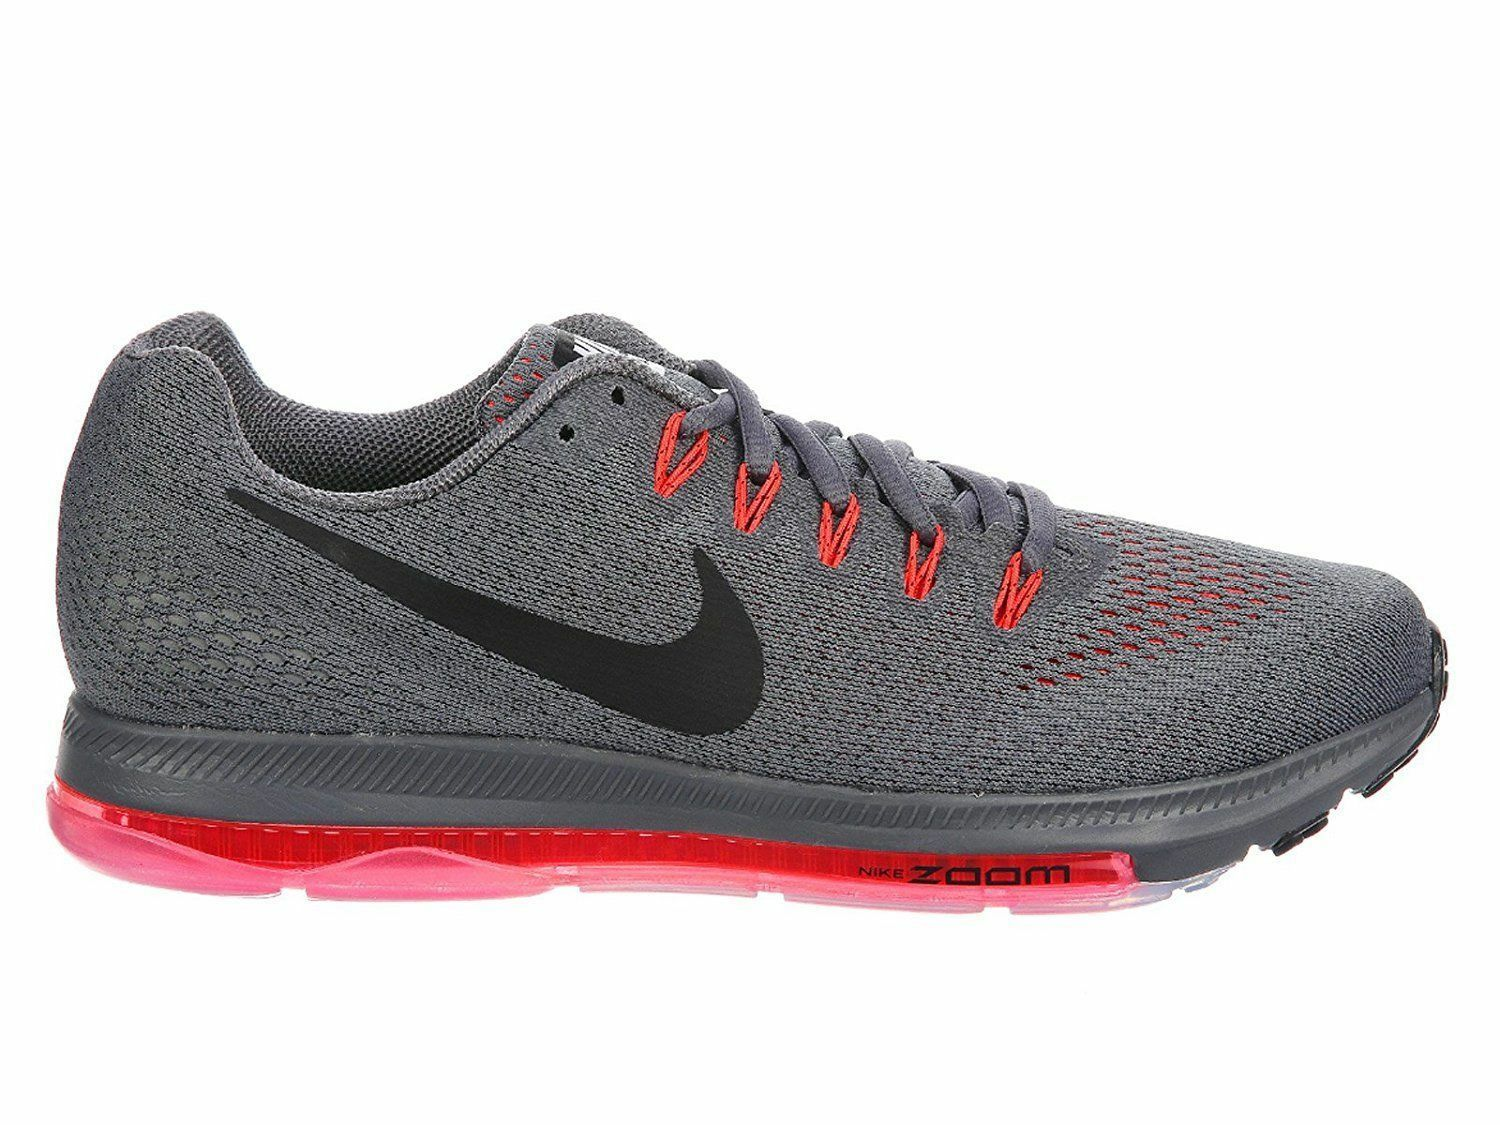 Seasonal clearance sale Nike Zoom All Out Low Men's Running Training Shoes Dark Grey/Black 878670 006